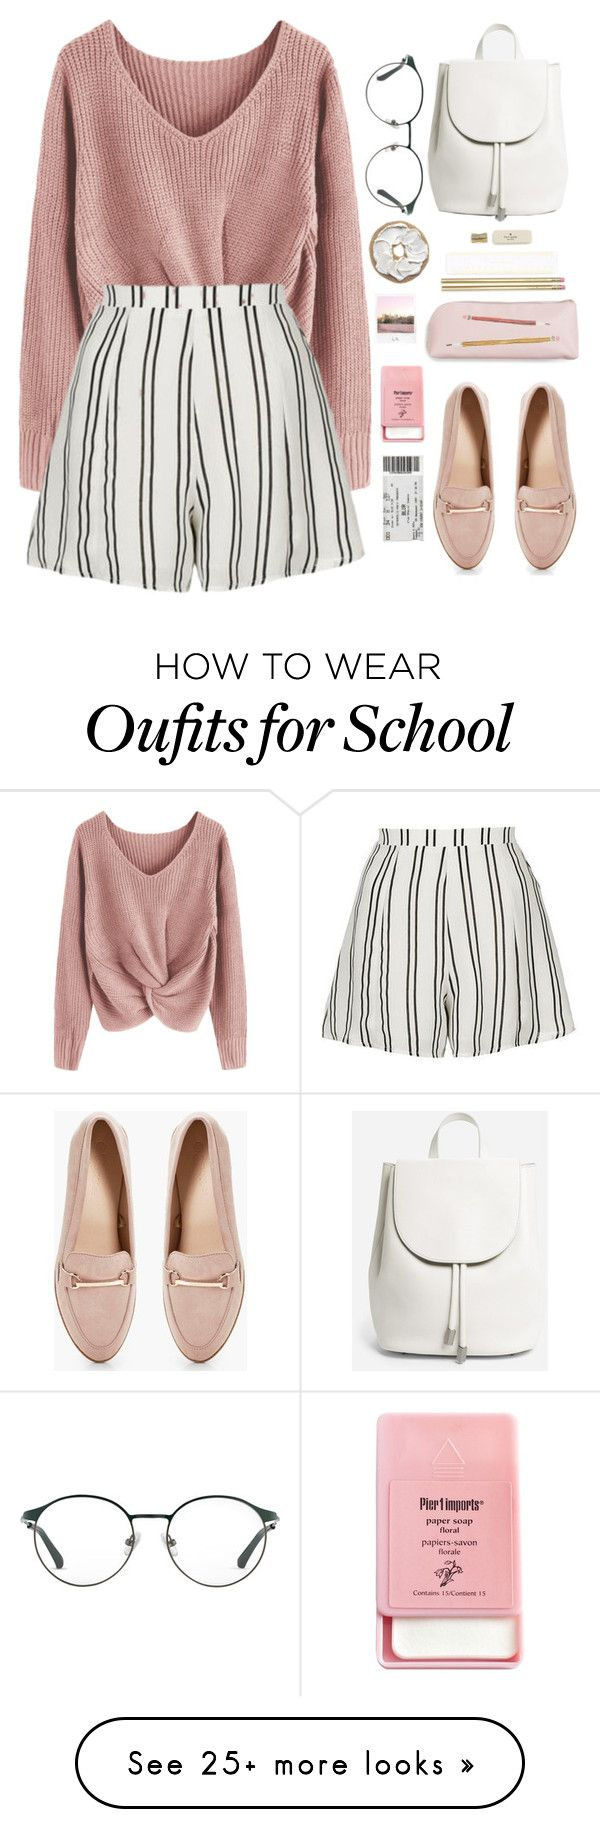 """c l o s e r"" by rubiasol on Polyvore featuring Topshop, Boohoo, Kate Spade, Everlane, 3.1 Phillip Lim, Pier 1 Imports and Polaroid"